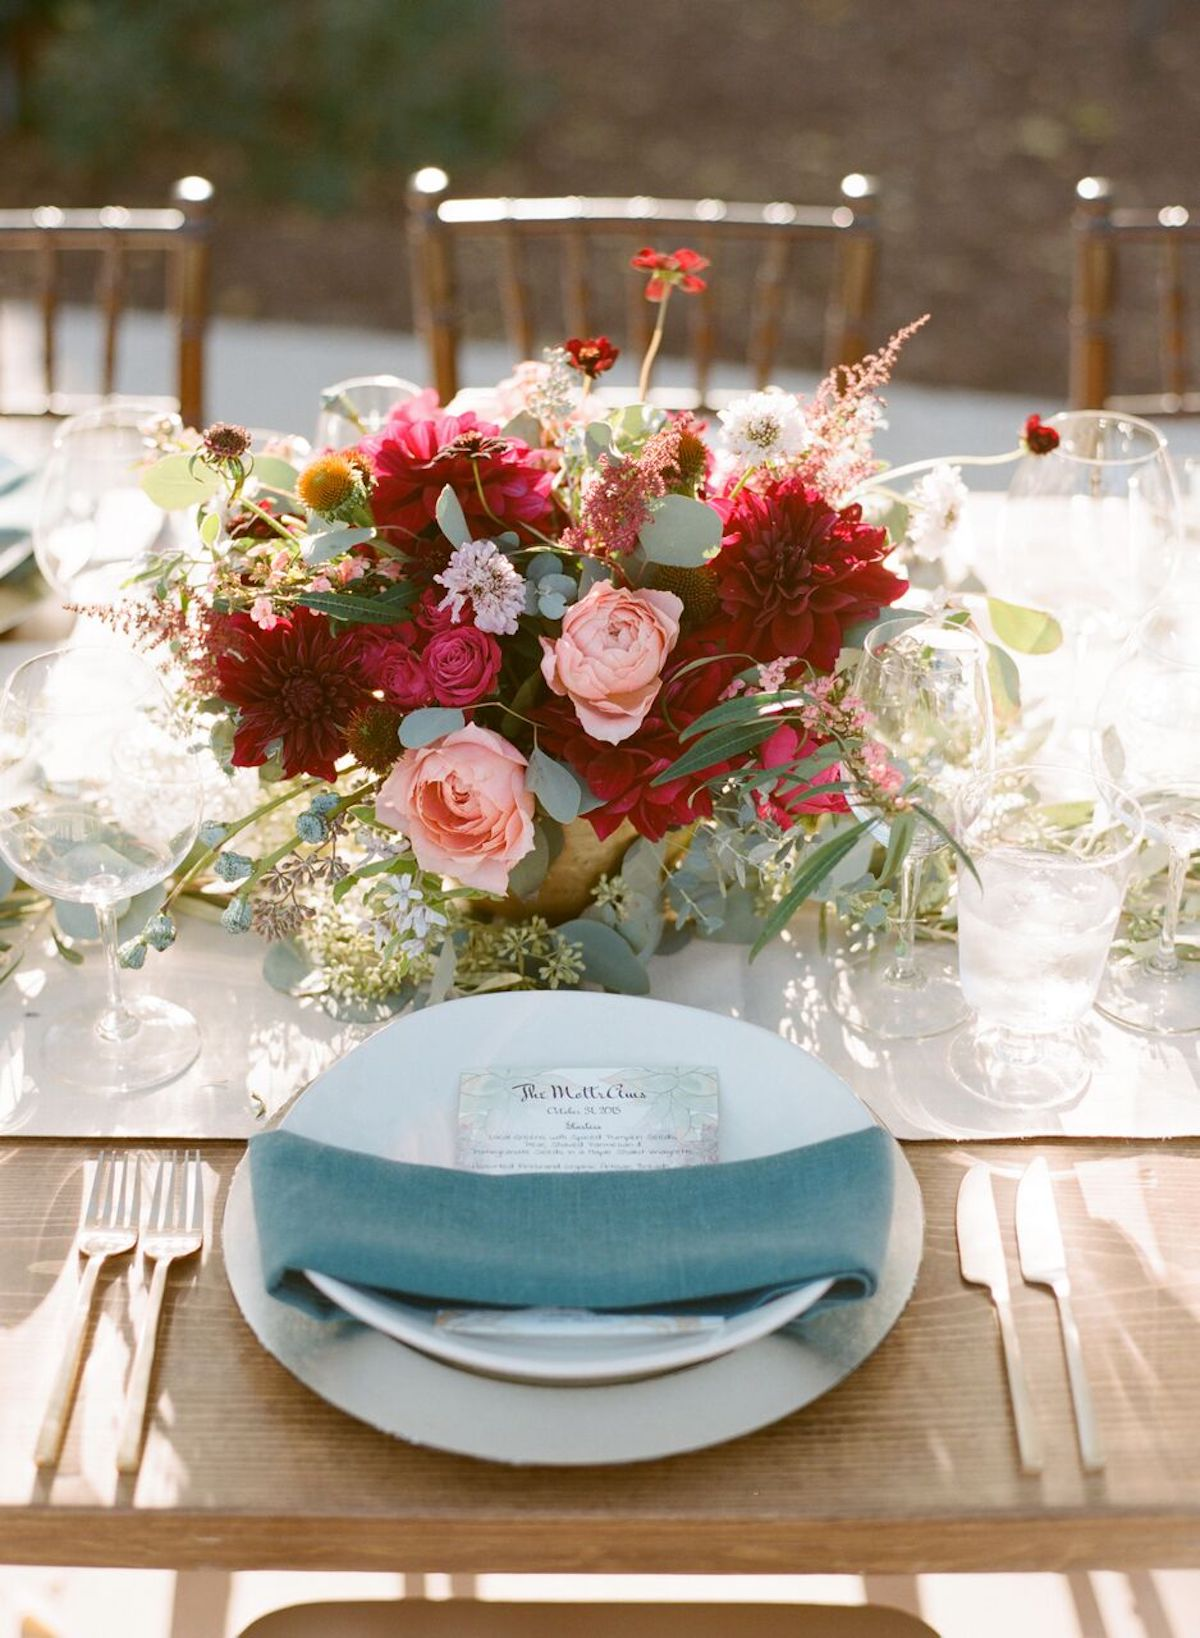 Marilyn-Ambra-Party-Consultants-Napa-Private-Estate-Elisabeth-Millay-Photography63.jpeg